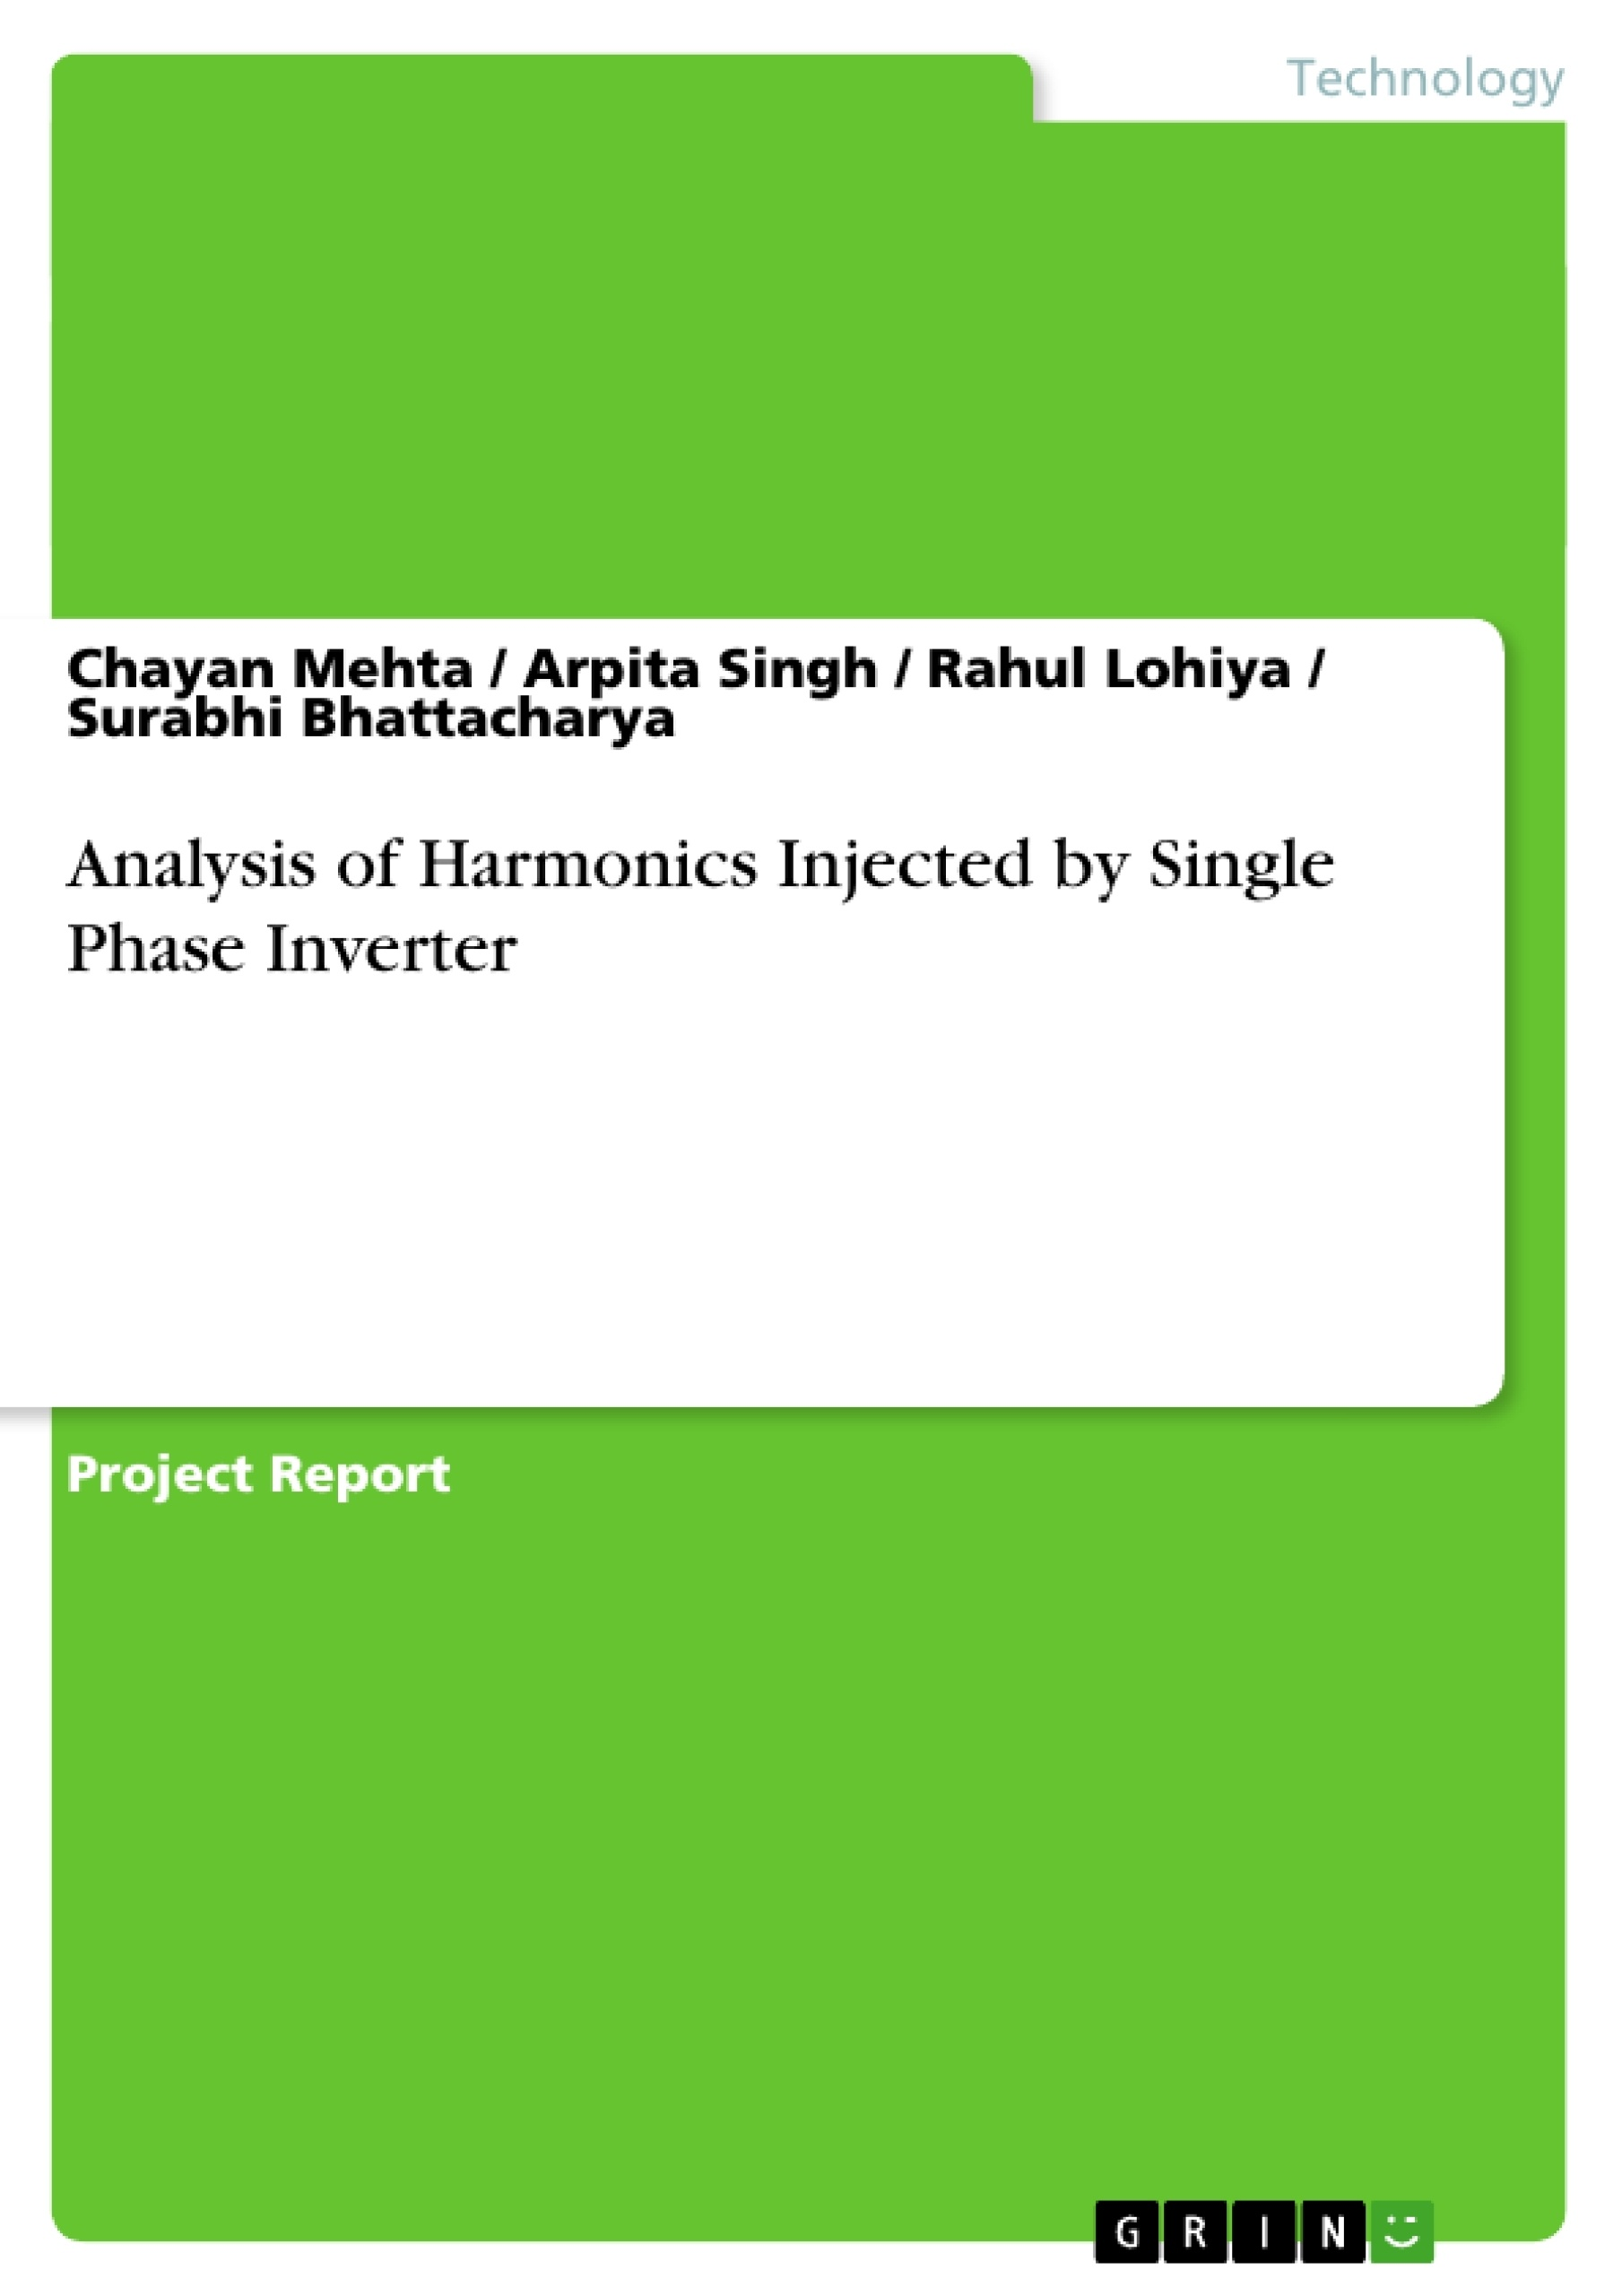 Title: Analysis of Harmonics Injected by Single Phase Inverter